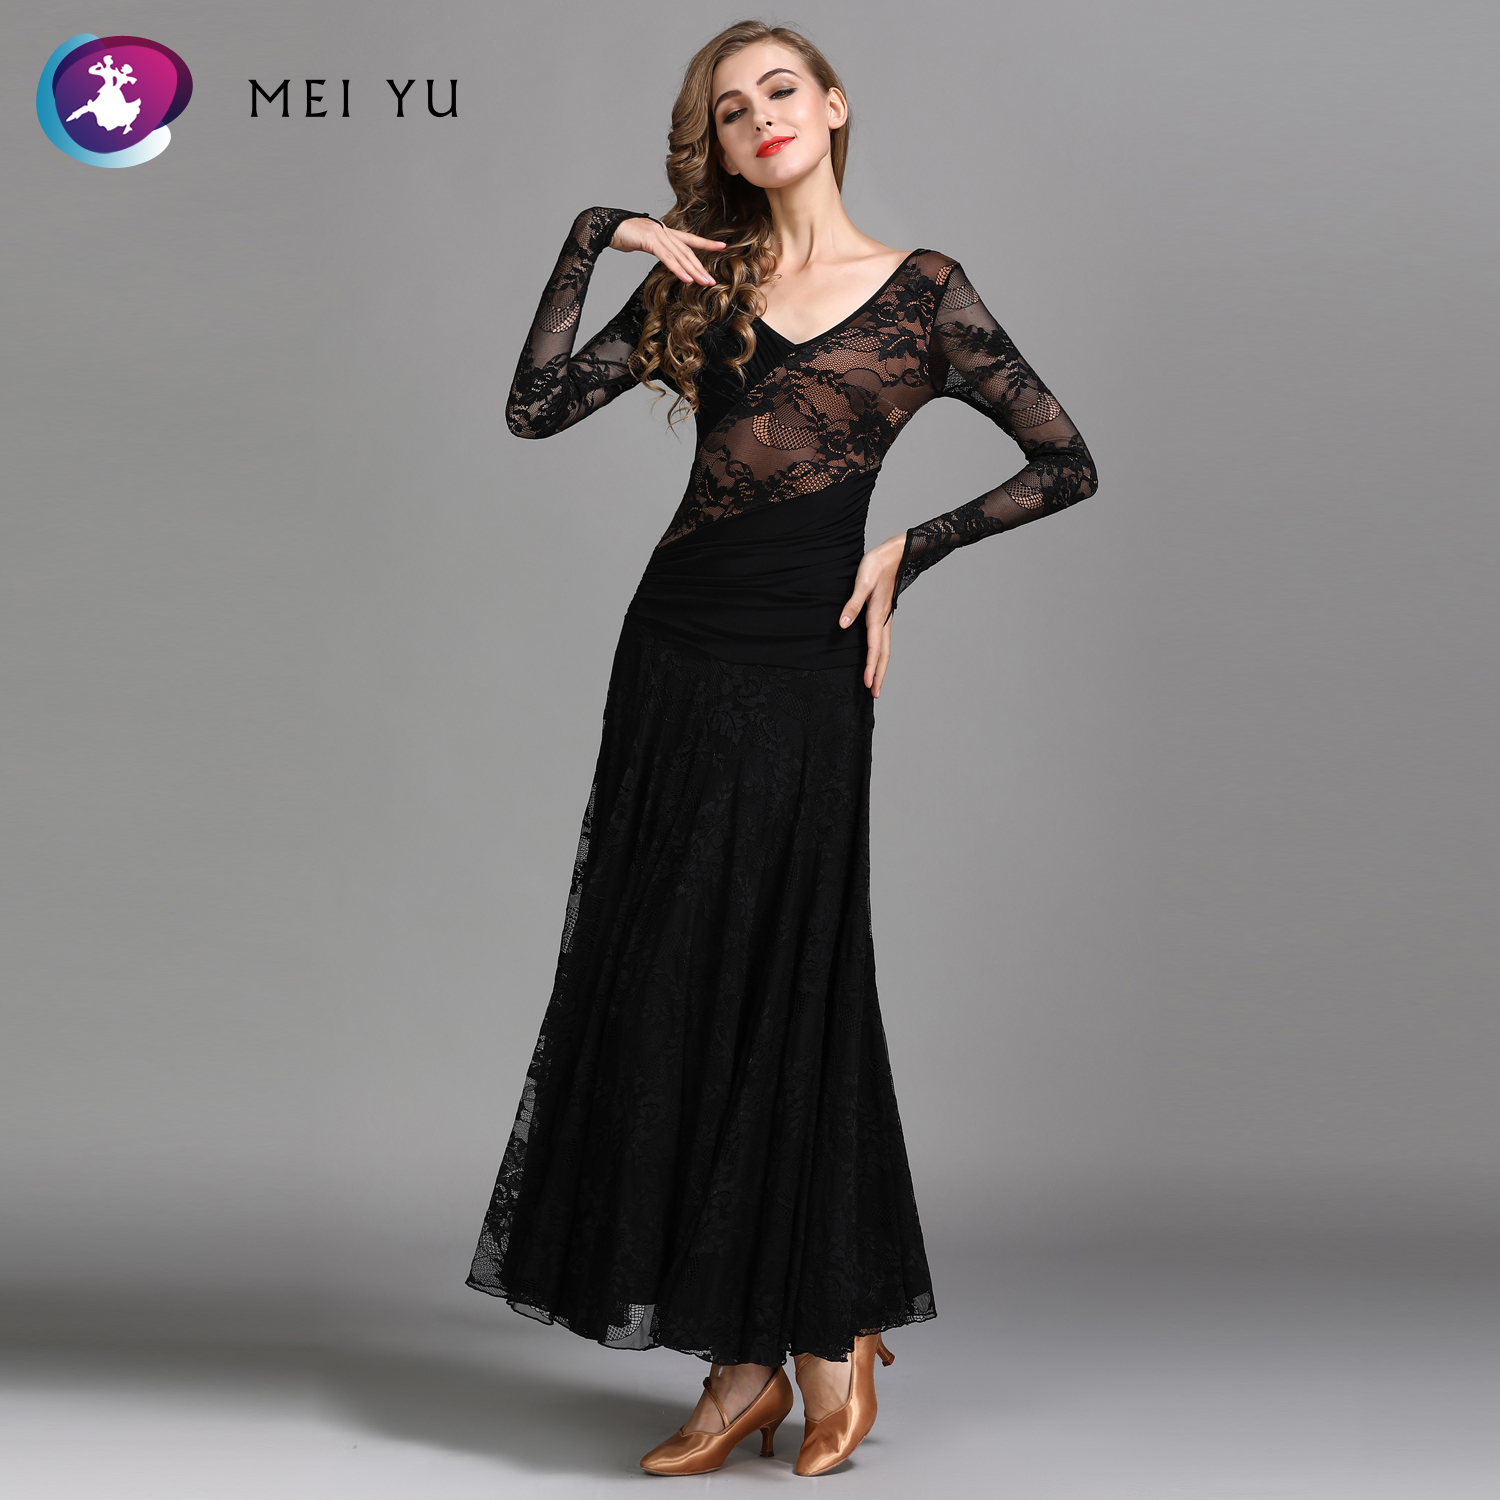 Stage & Dance Wear Mei Yu My790 Modern Dance Costume Women Lady Adult Waltzing Tango Lace Dancing Dress Ballroom Costume Evening Party Dress Novelty & Special Use